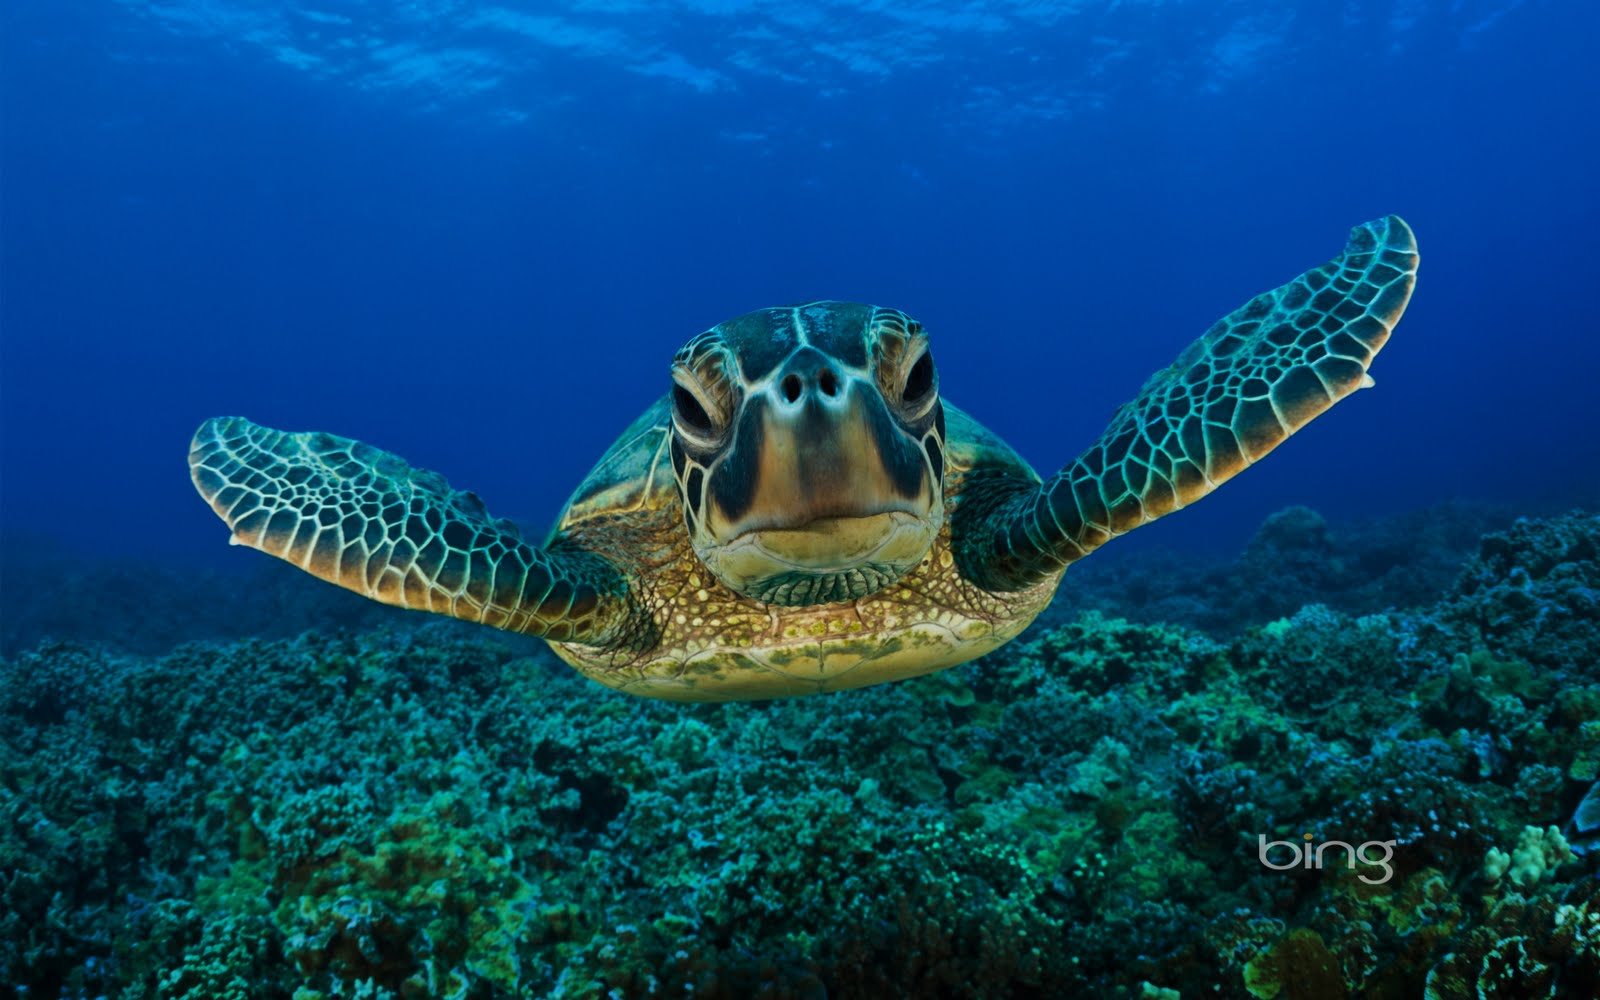 Funny 3d Animal Turtle Wallpapers Hd: Funny Turtle Wallpaper